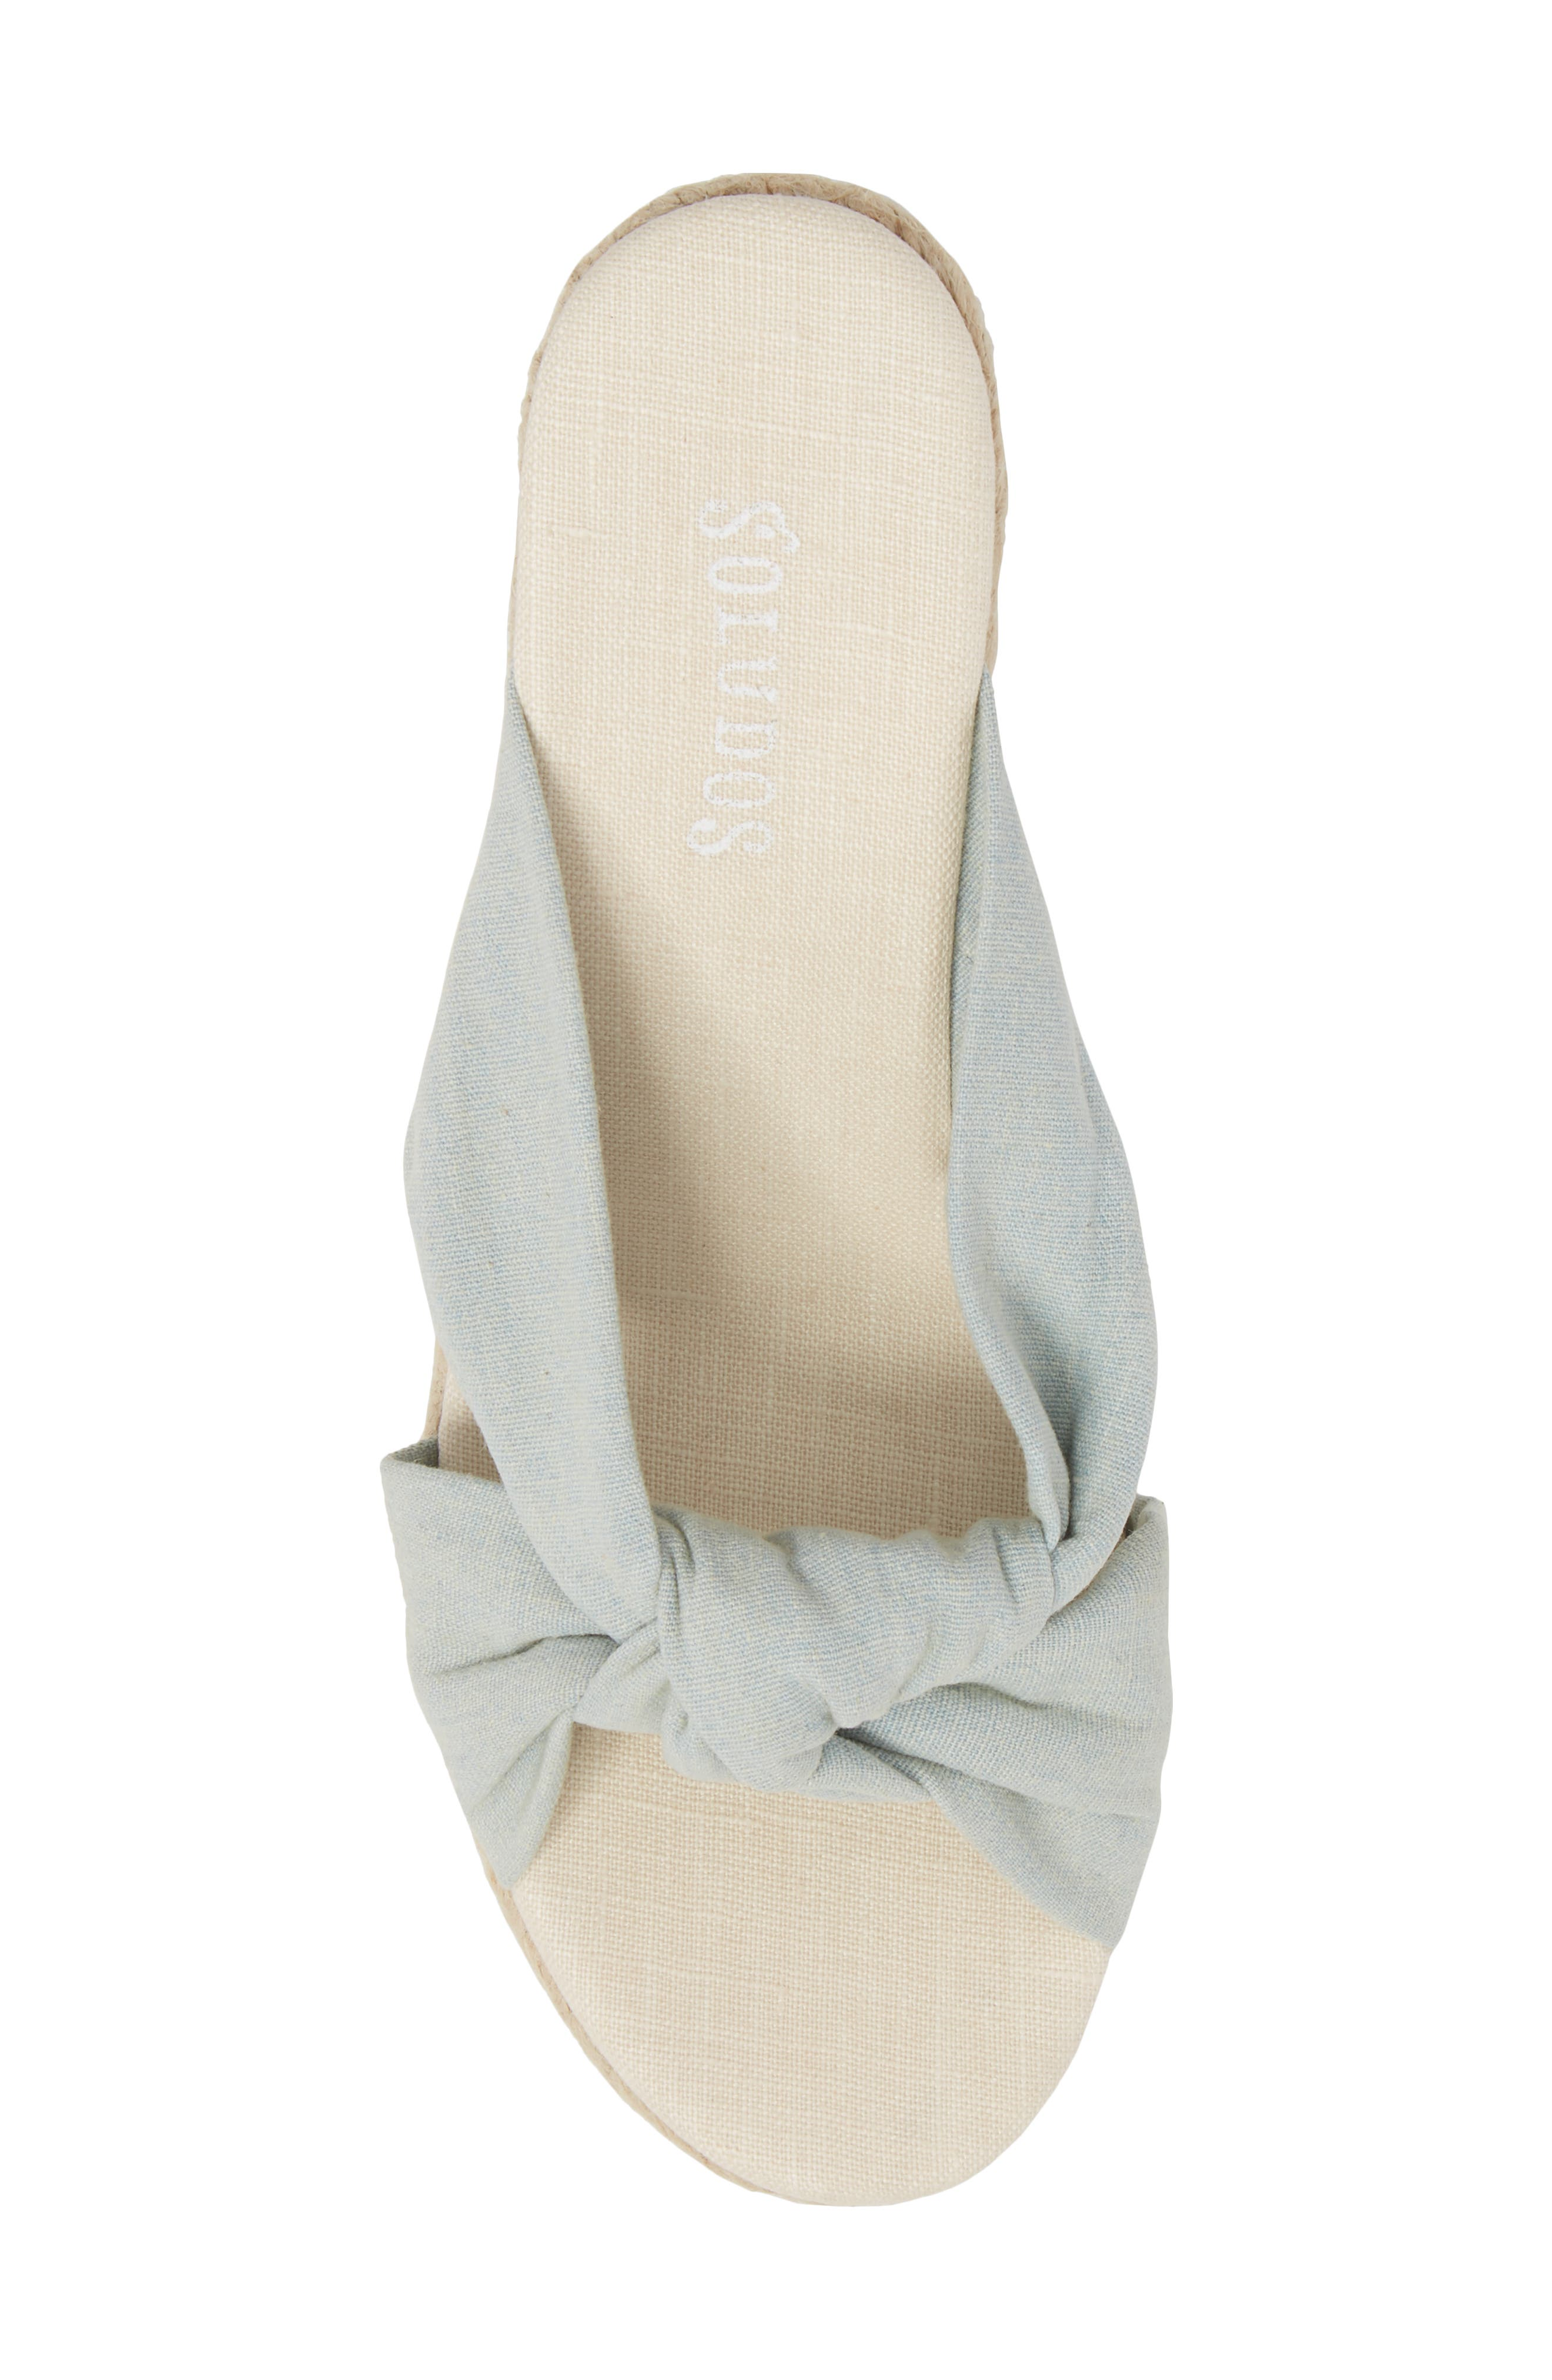 Knotted Espadrille Wedge Sandal,                             Alternate thumbnail 5, color,                             420